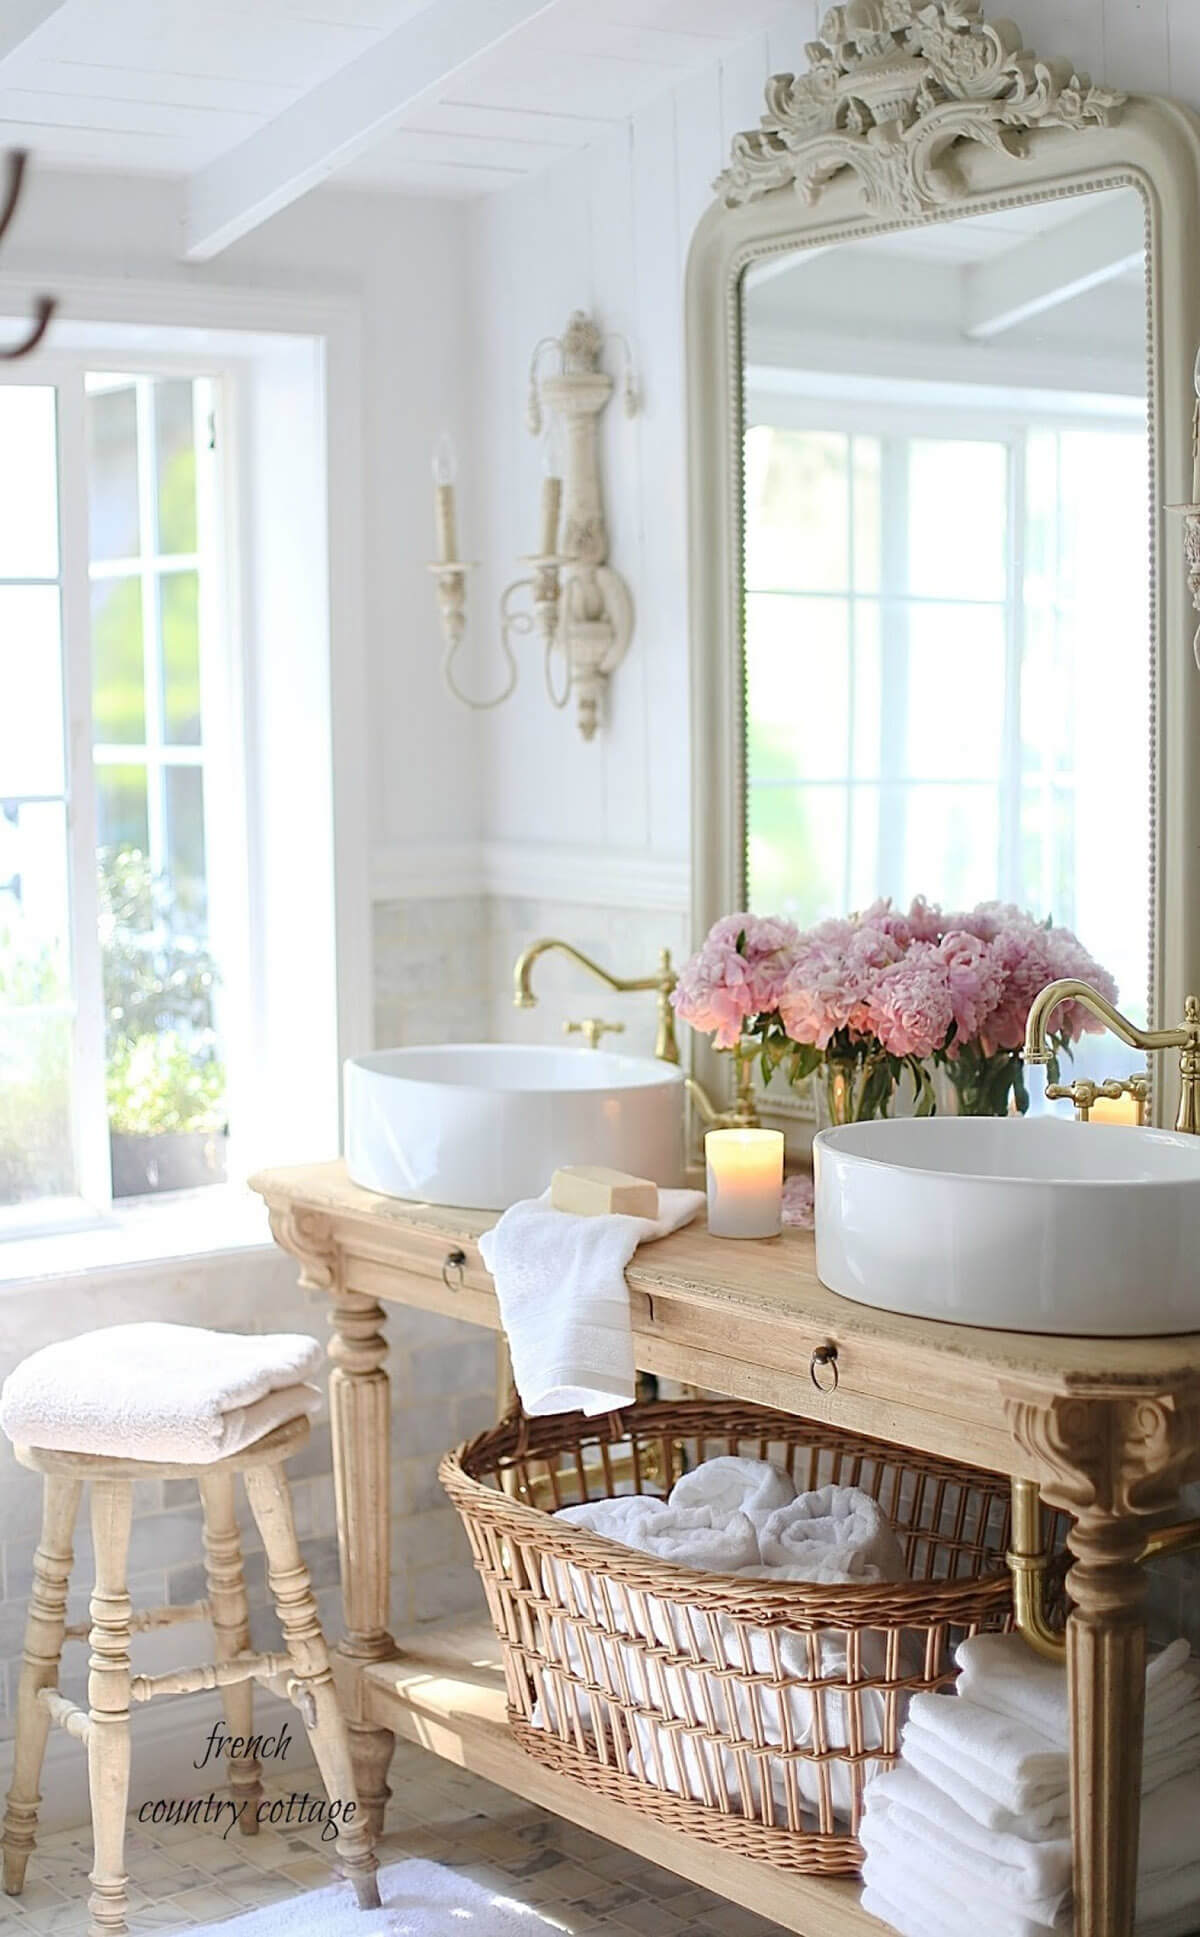 30 Best Cottage Style Bathroom Ideas and Designs for 2020 on Rural Bathroom  id=12420